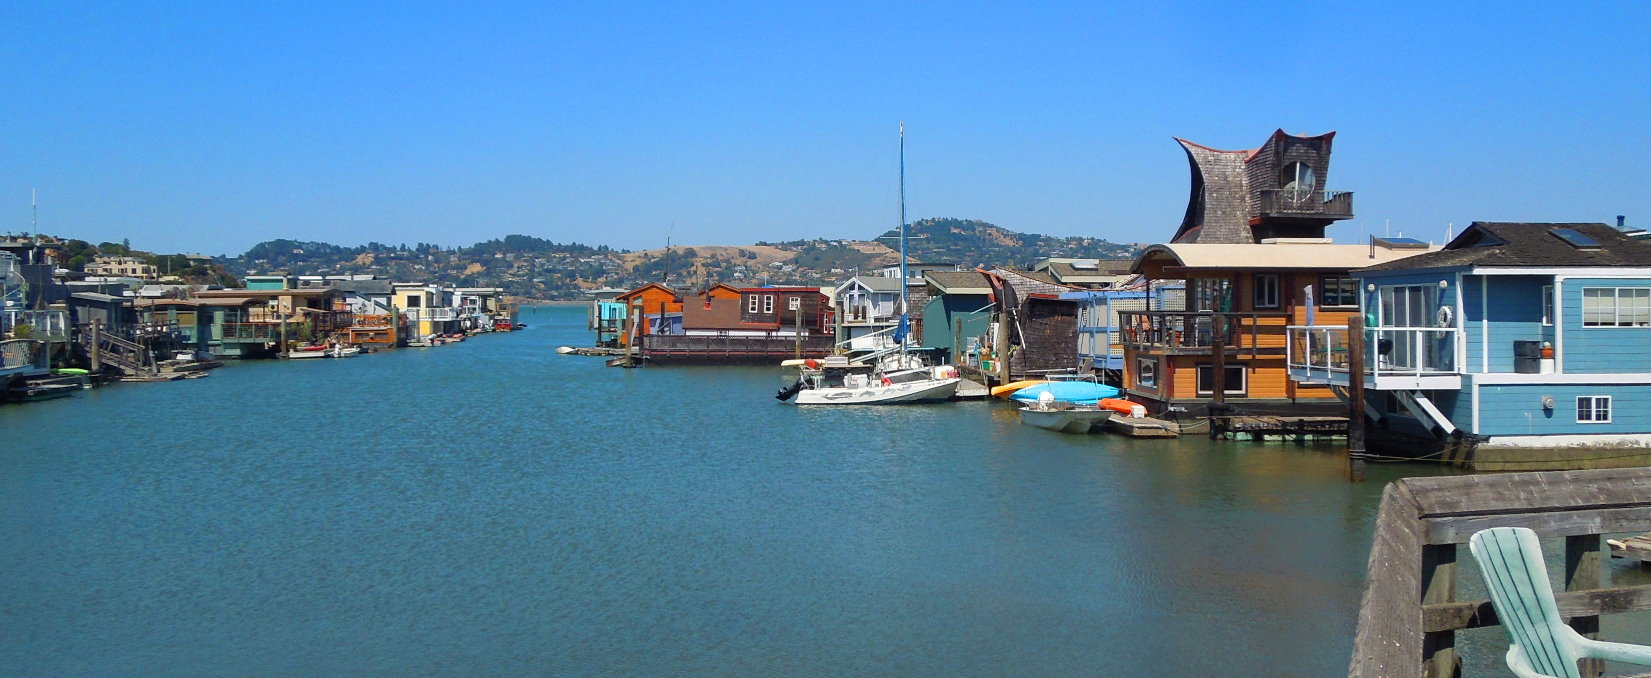 Sausalito House Boats Floating Homes  Guided Tour from San Francisco Trip Advisor